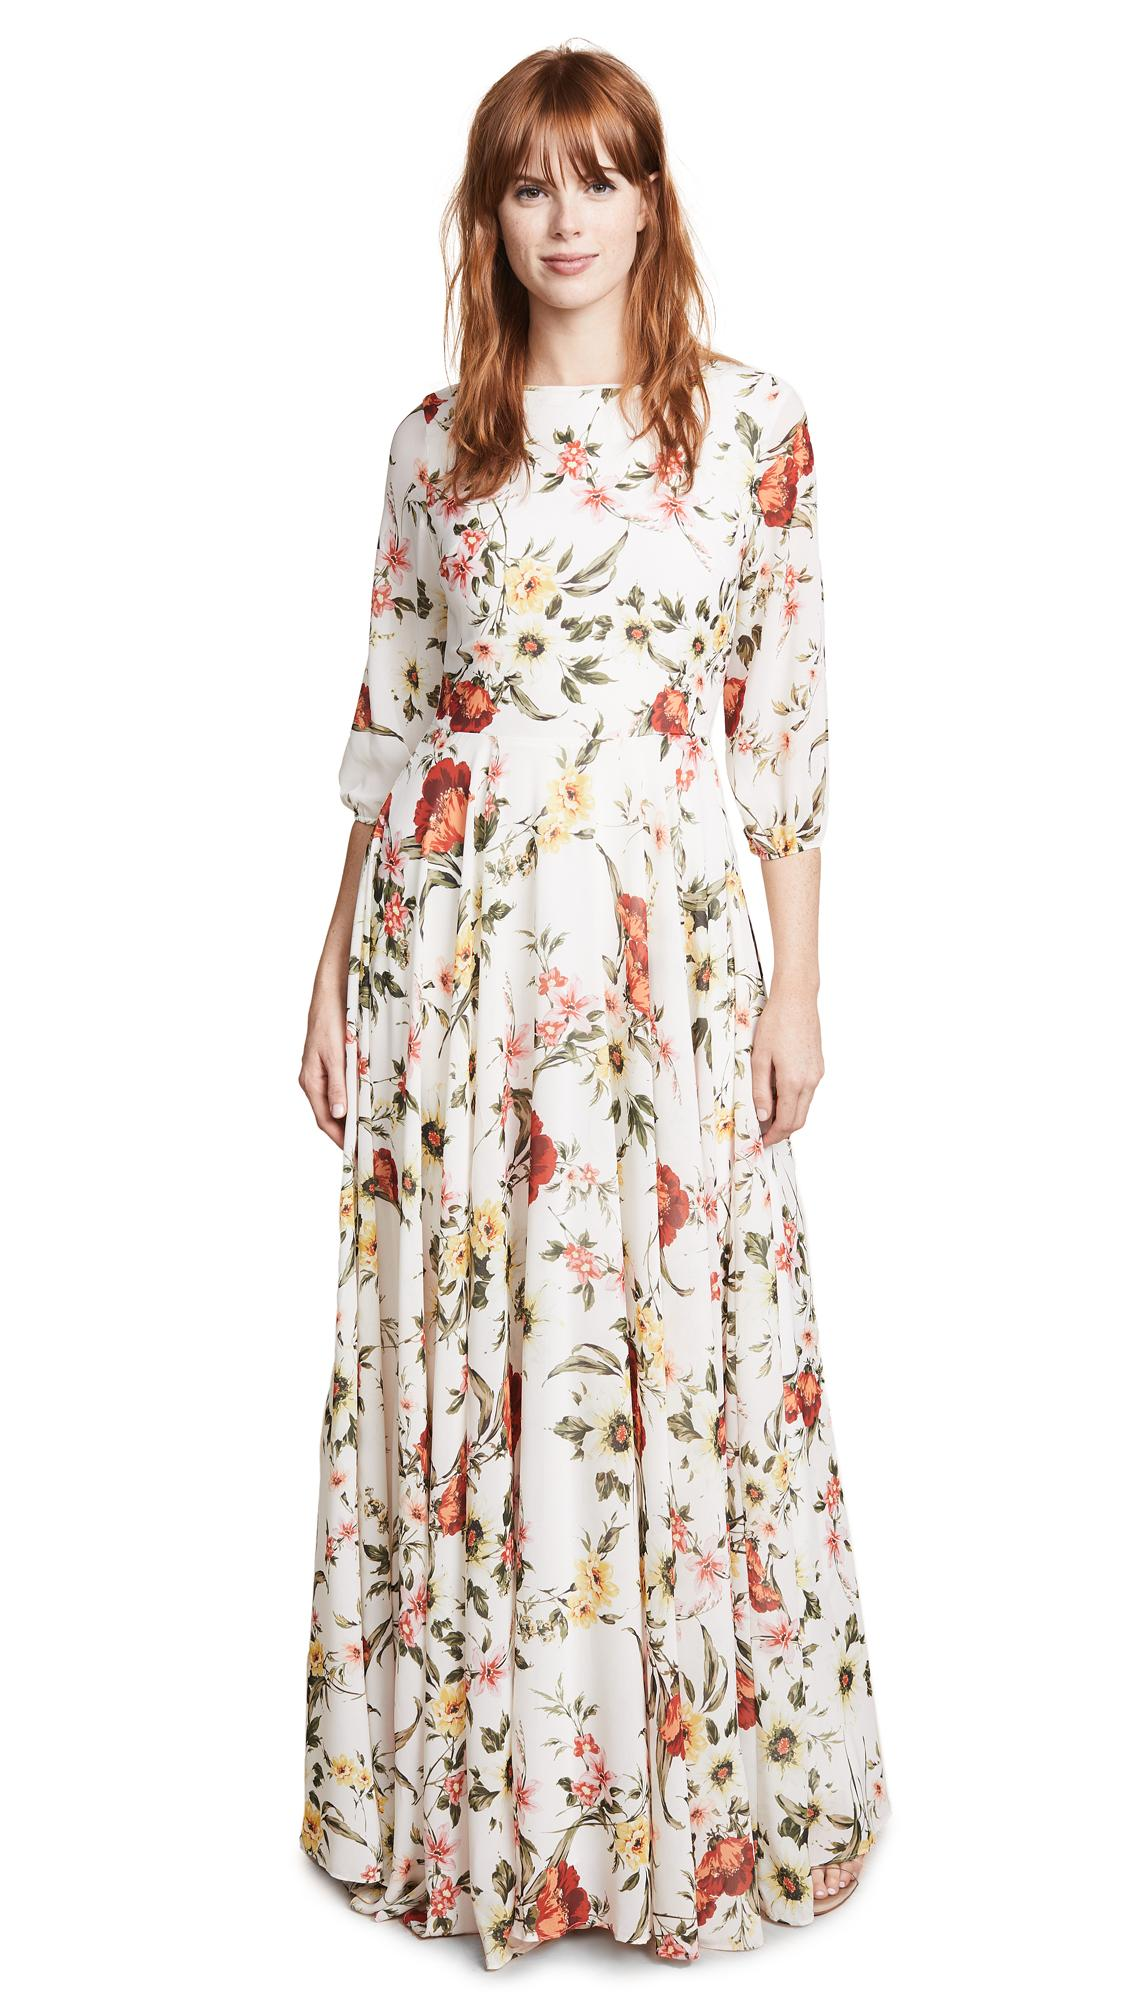 5374710c66 Yumi White Floral Long Sleeve Day Dress - Gomes Weine AG